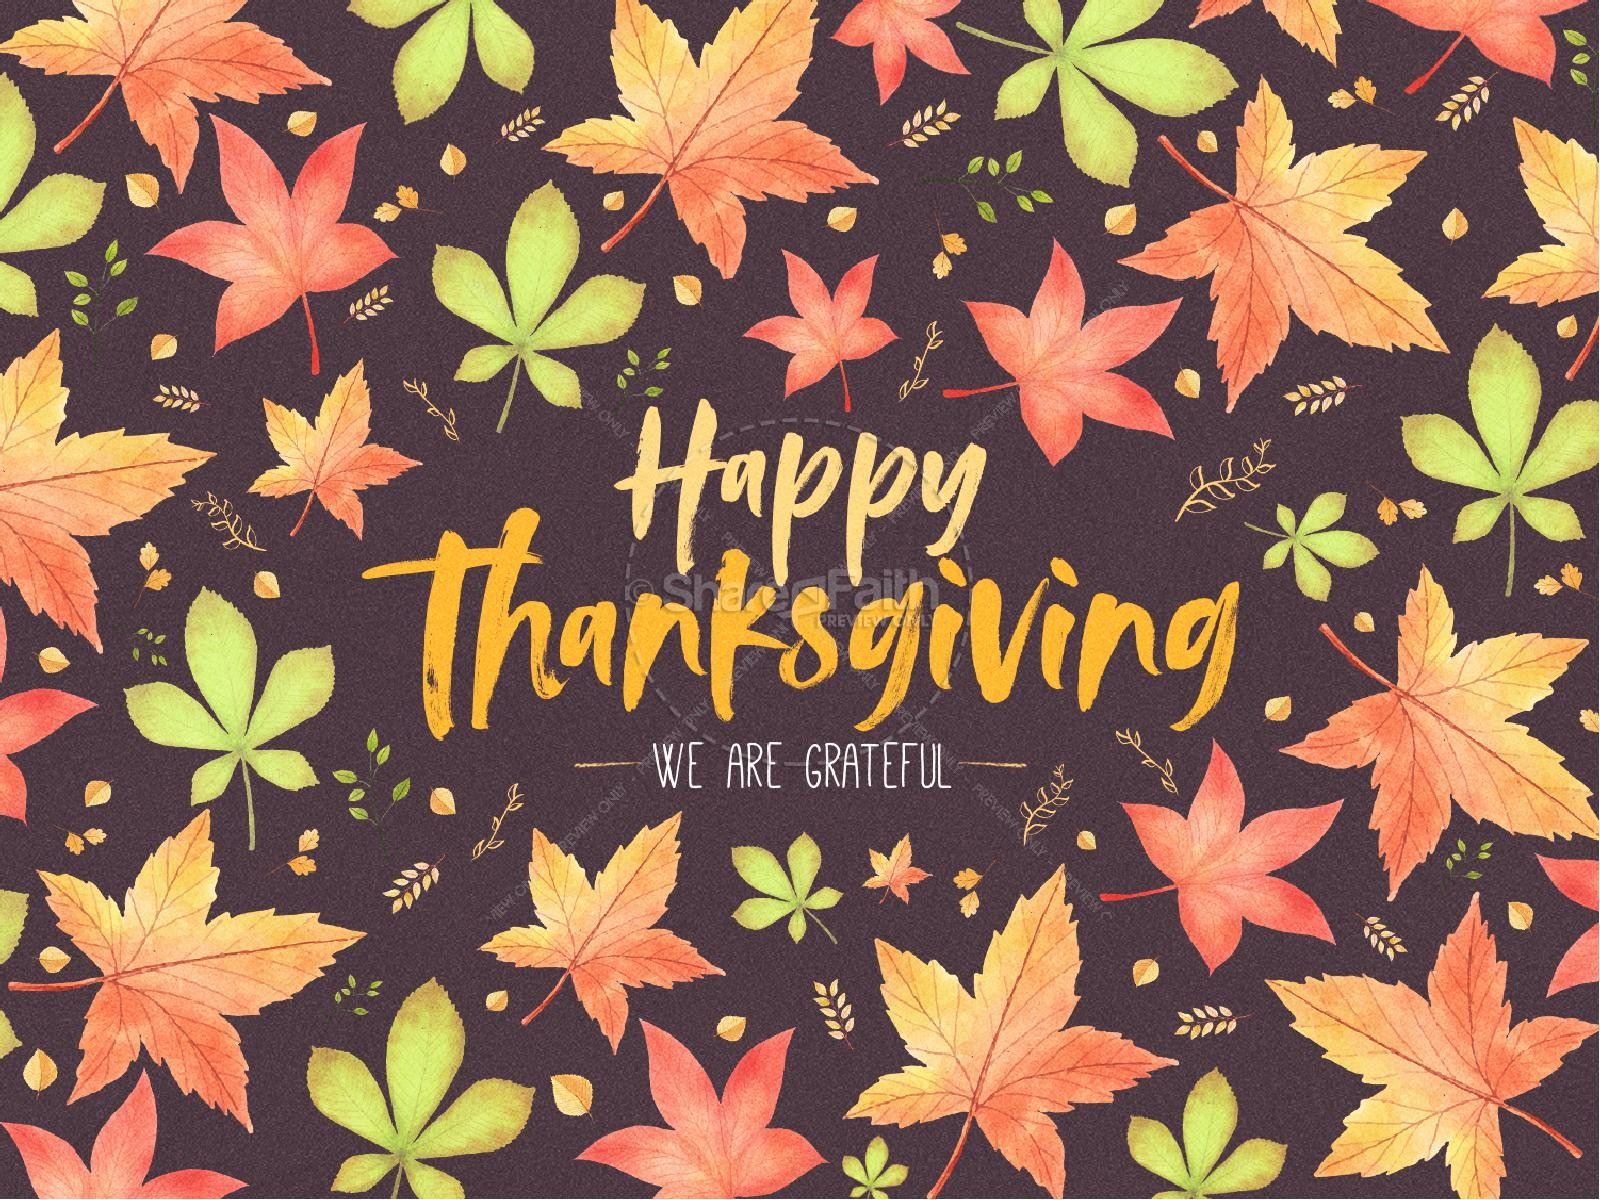 Happy Thanksgiving Holiday Graphic